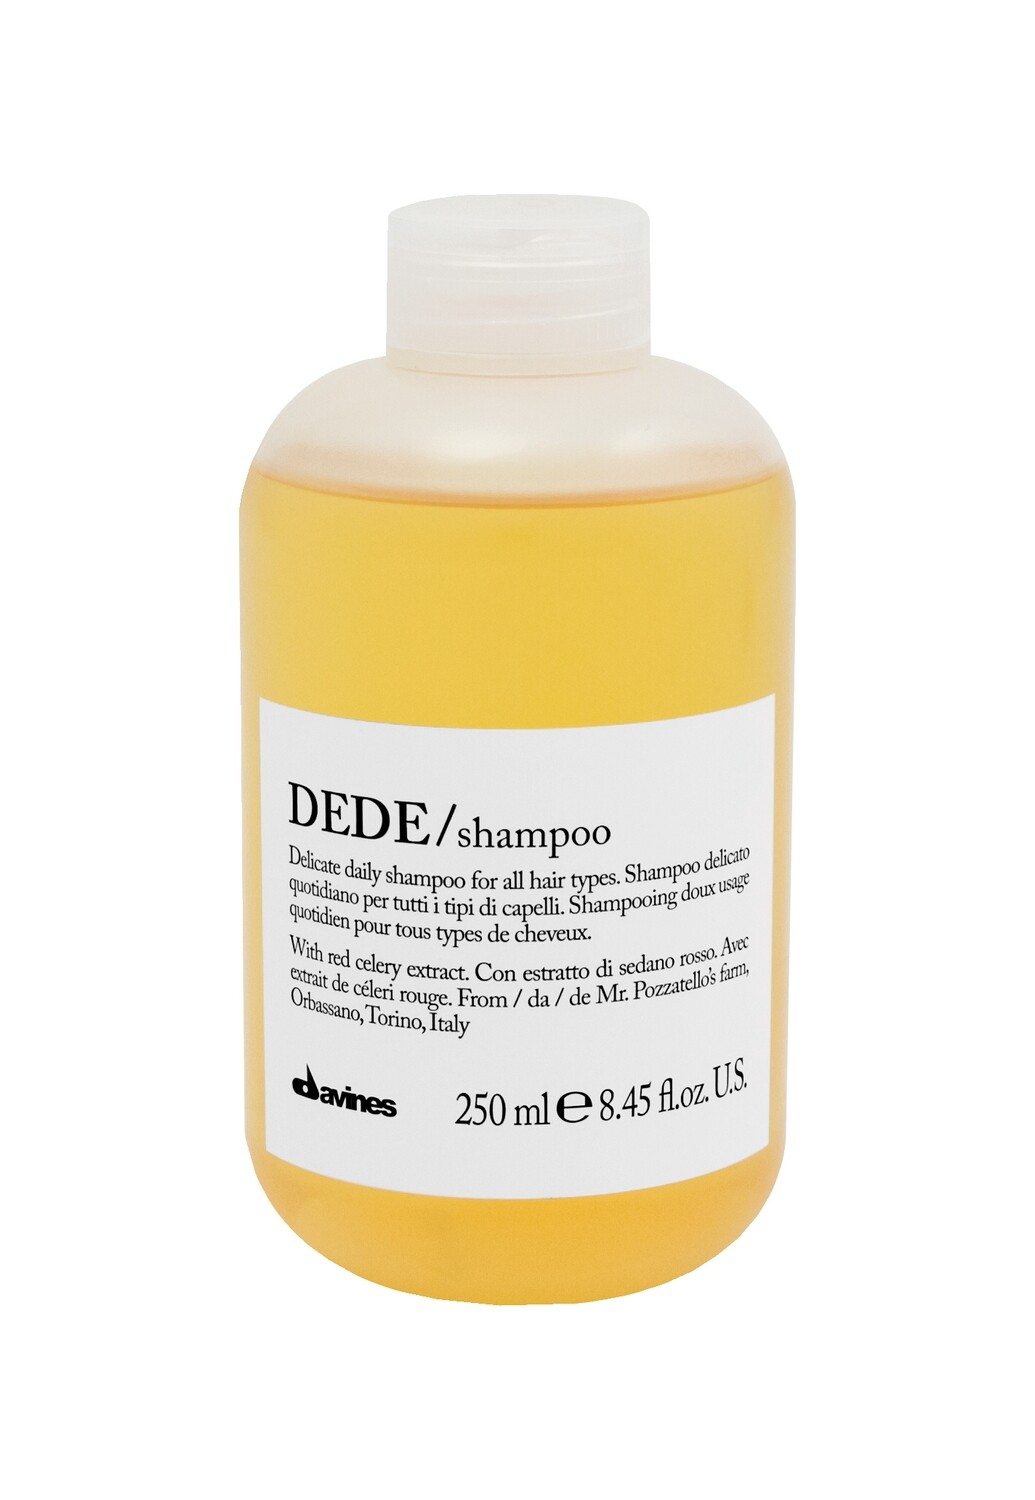 DEDE Shampoo 250ml